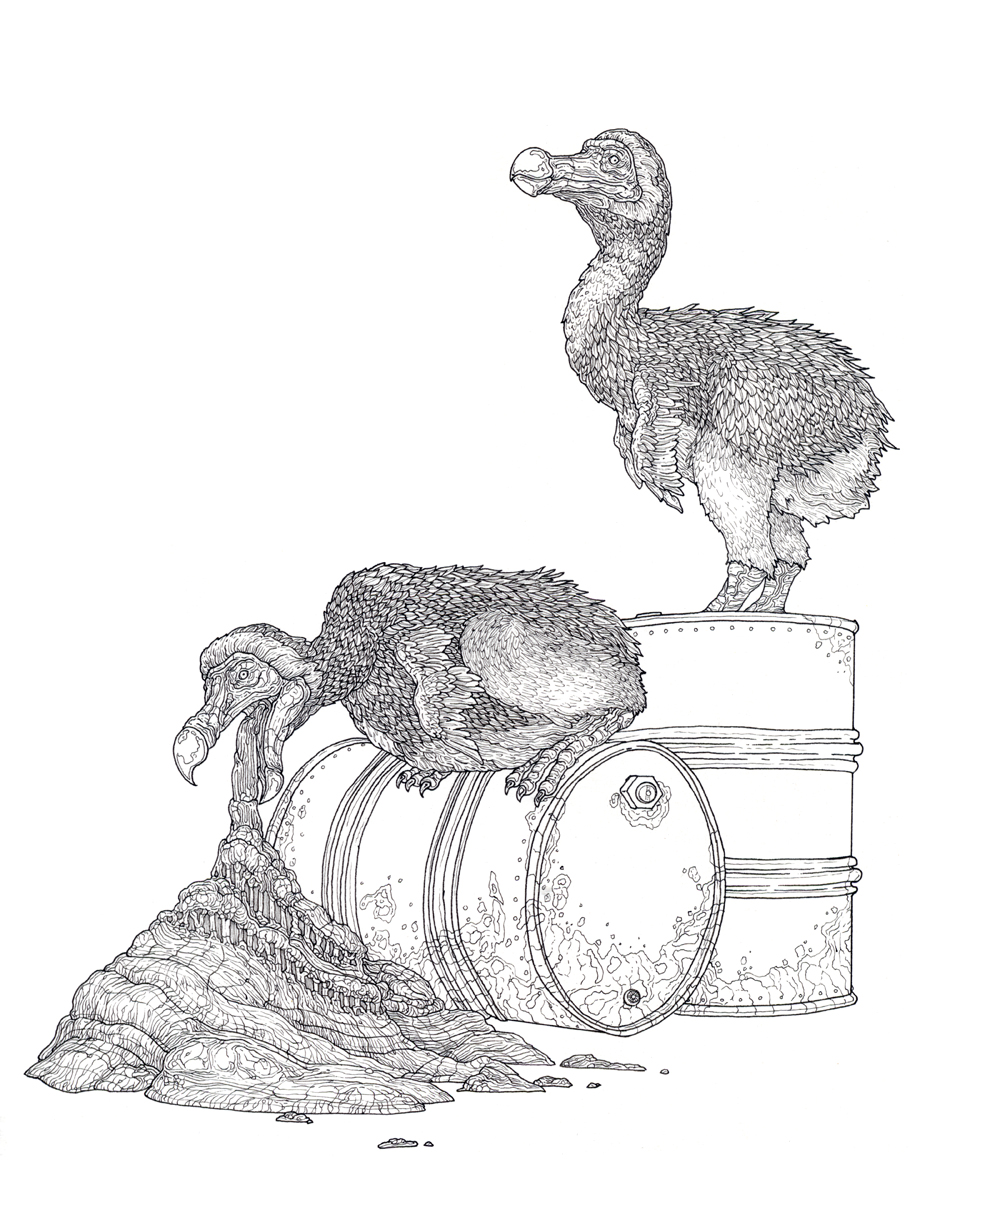 two dodos, ink on paper, 8.5in. x 7in., 2009